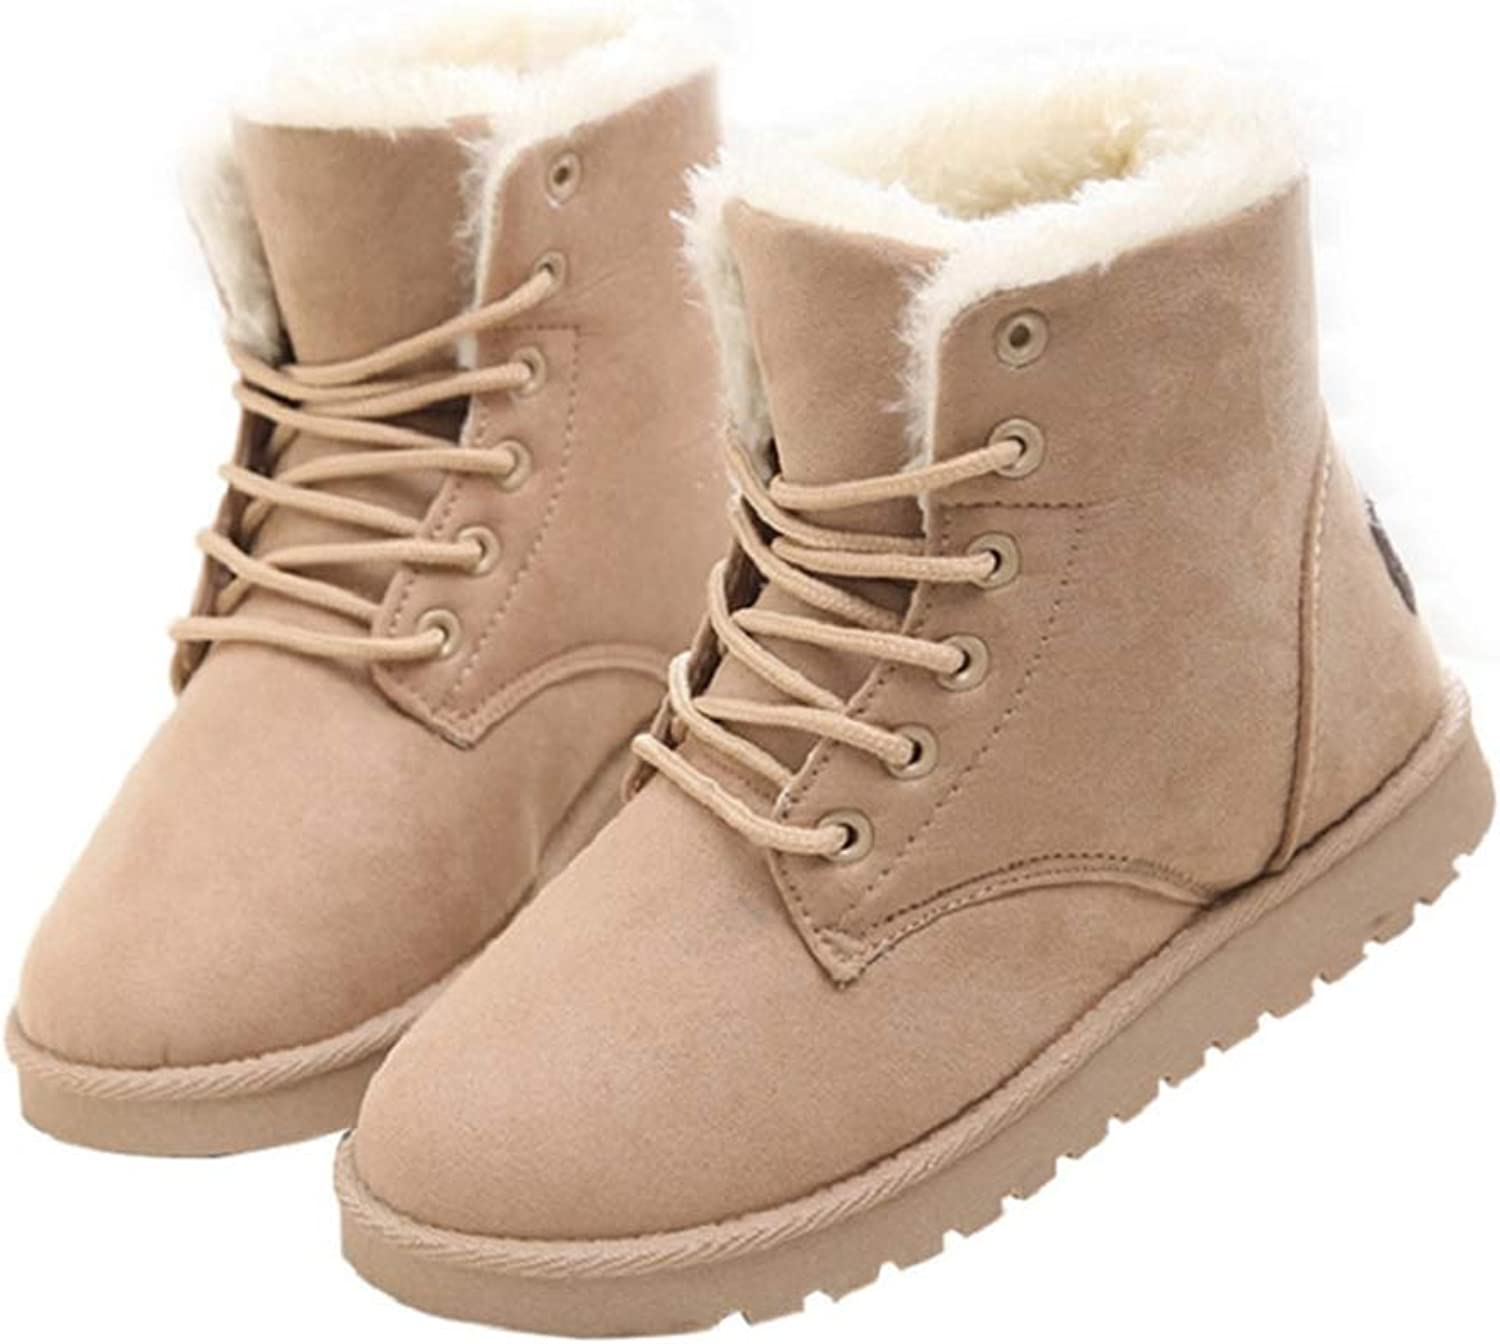 Hoxekle Women Winter Boots Warm Suede Fashion Lace Up Flat Boots High Women Snow Boots with Fur